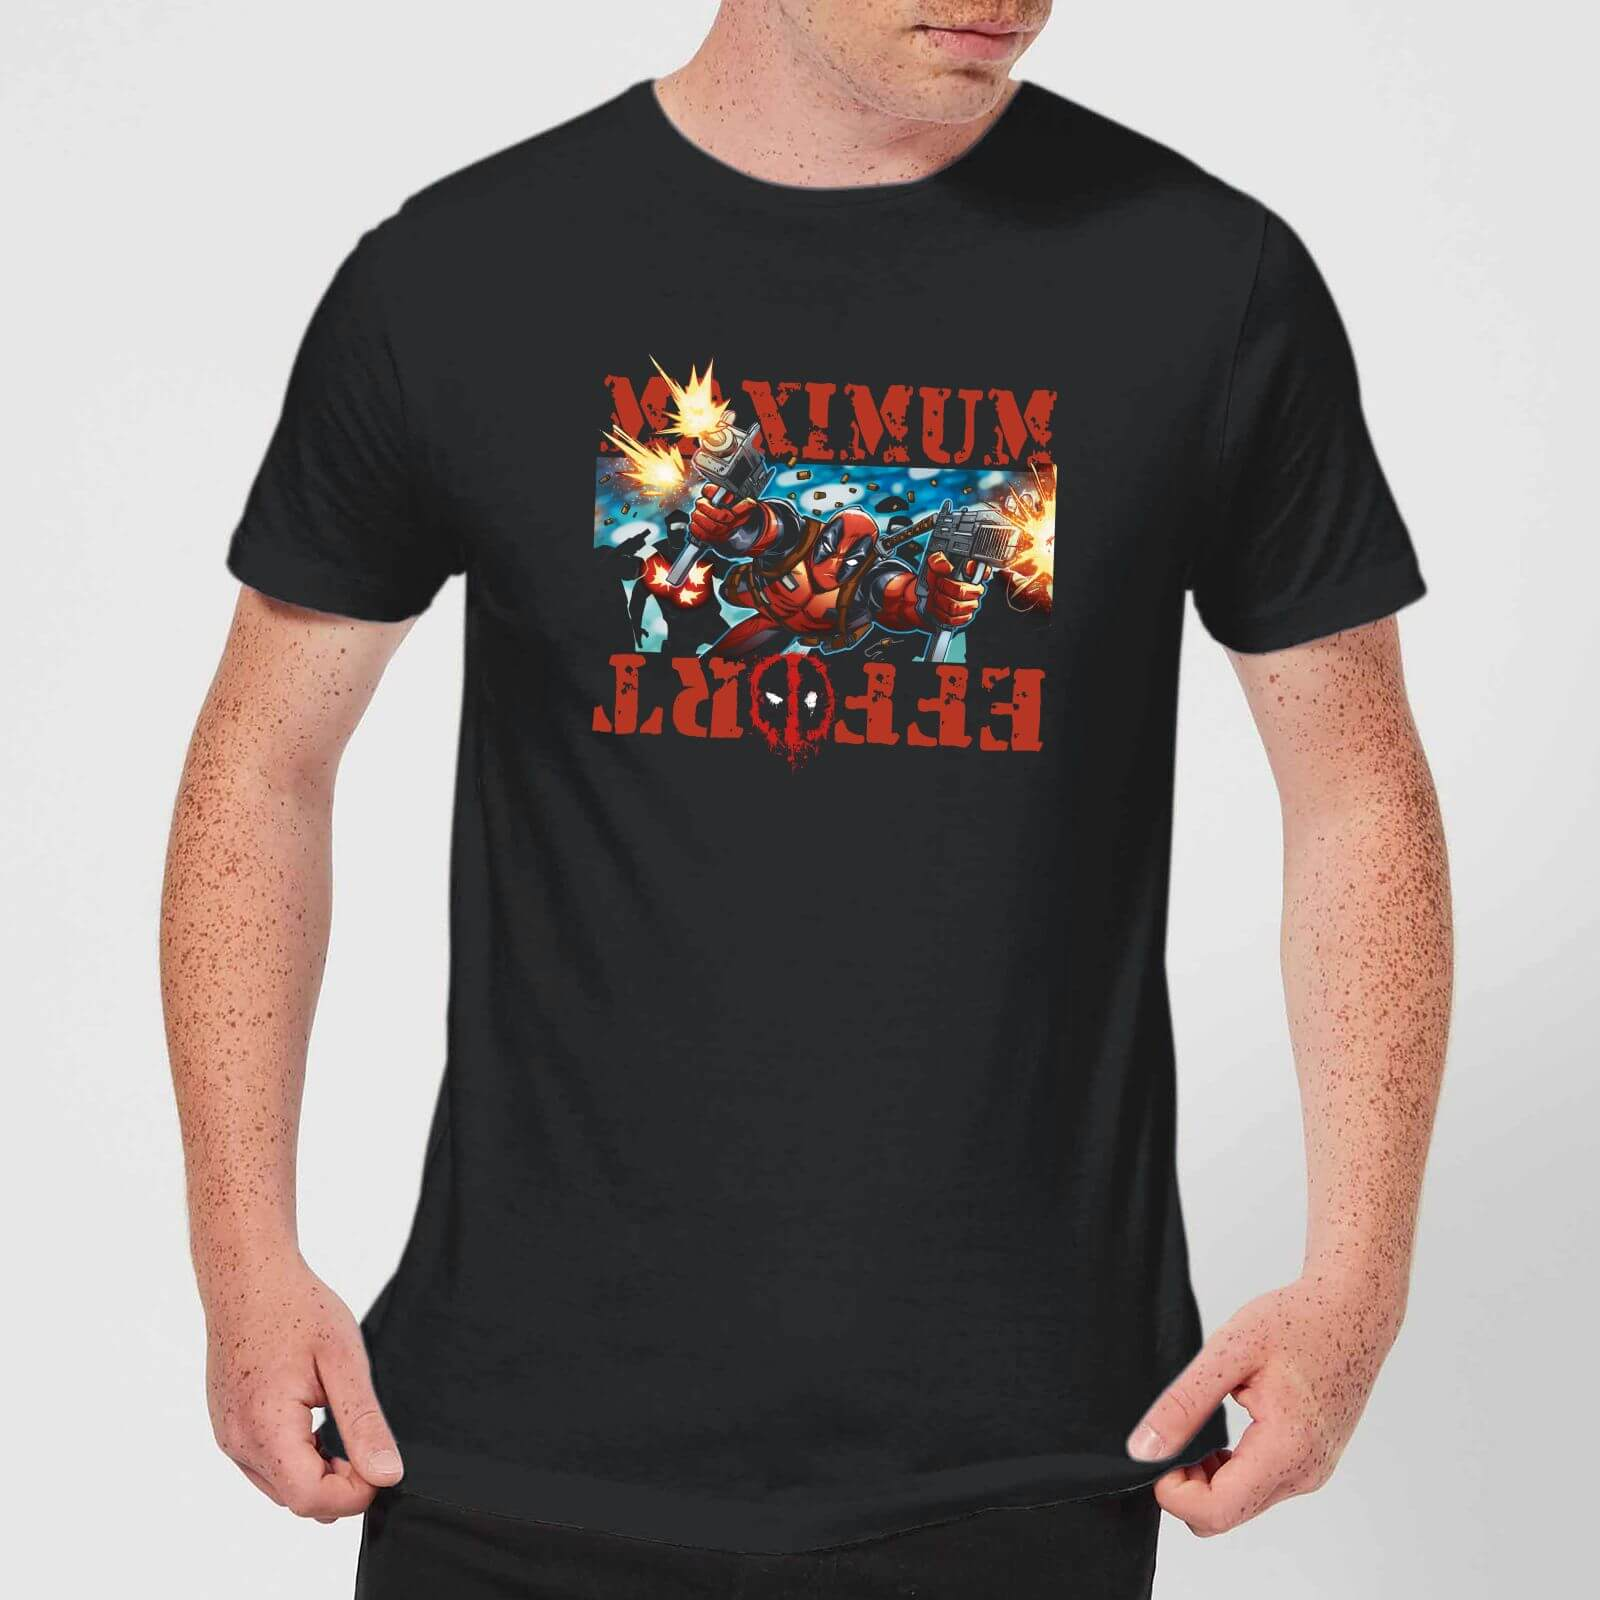 486d72e0 Marvel Deadpool Maximum Effort T-Shirt - Black Clothing | Zavvi